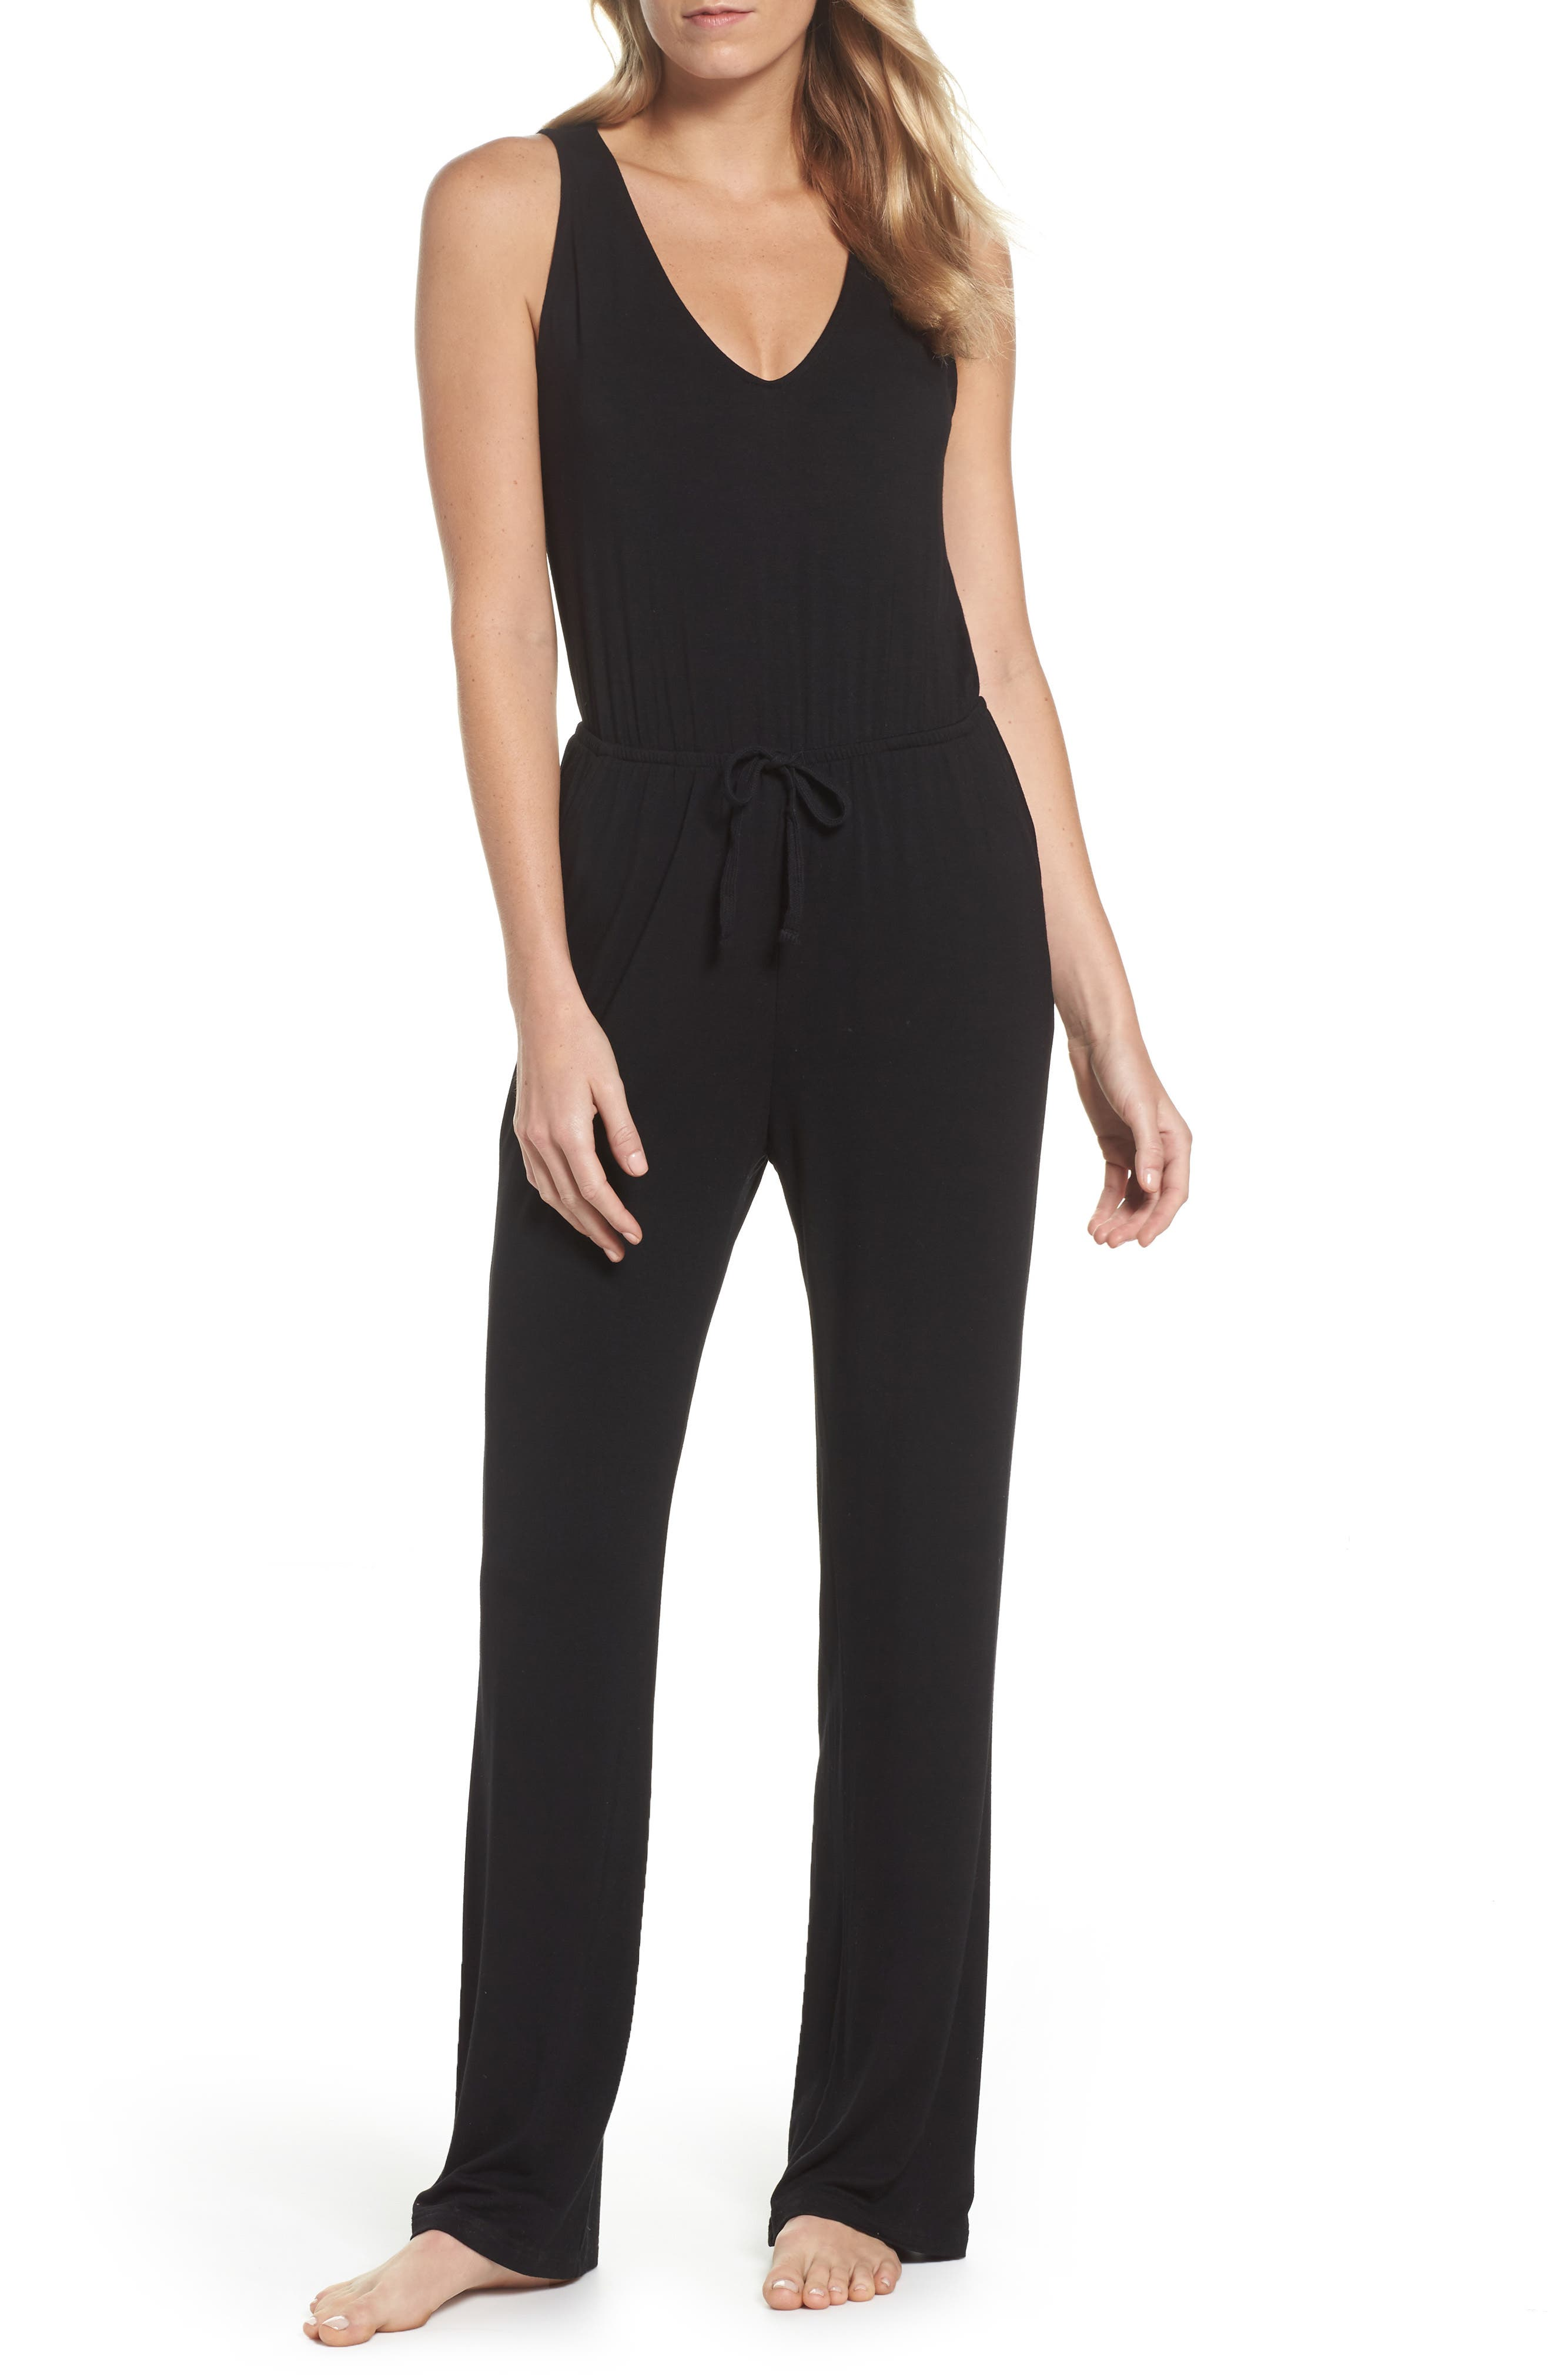 Alternate Image 1 Selected - BB Dakota Catalina Knit Lounge Jumpsuit